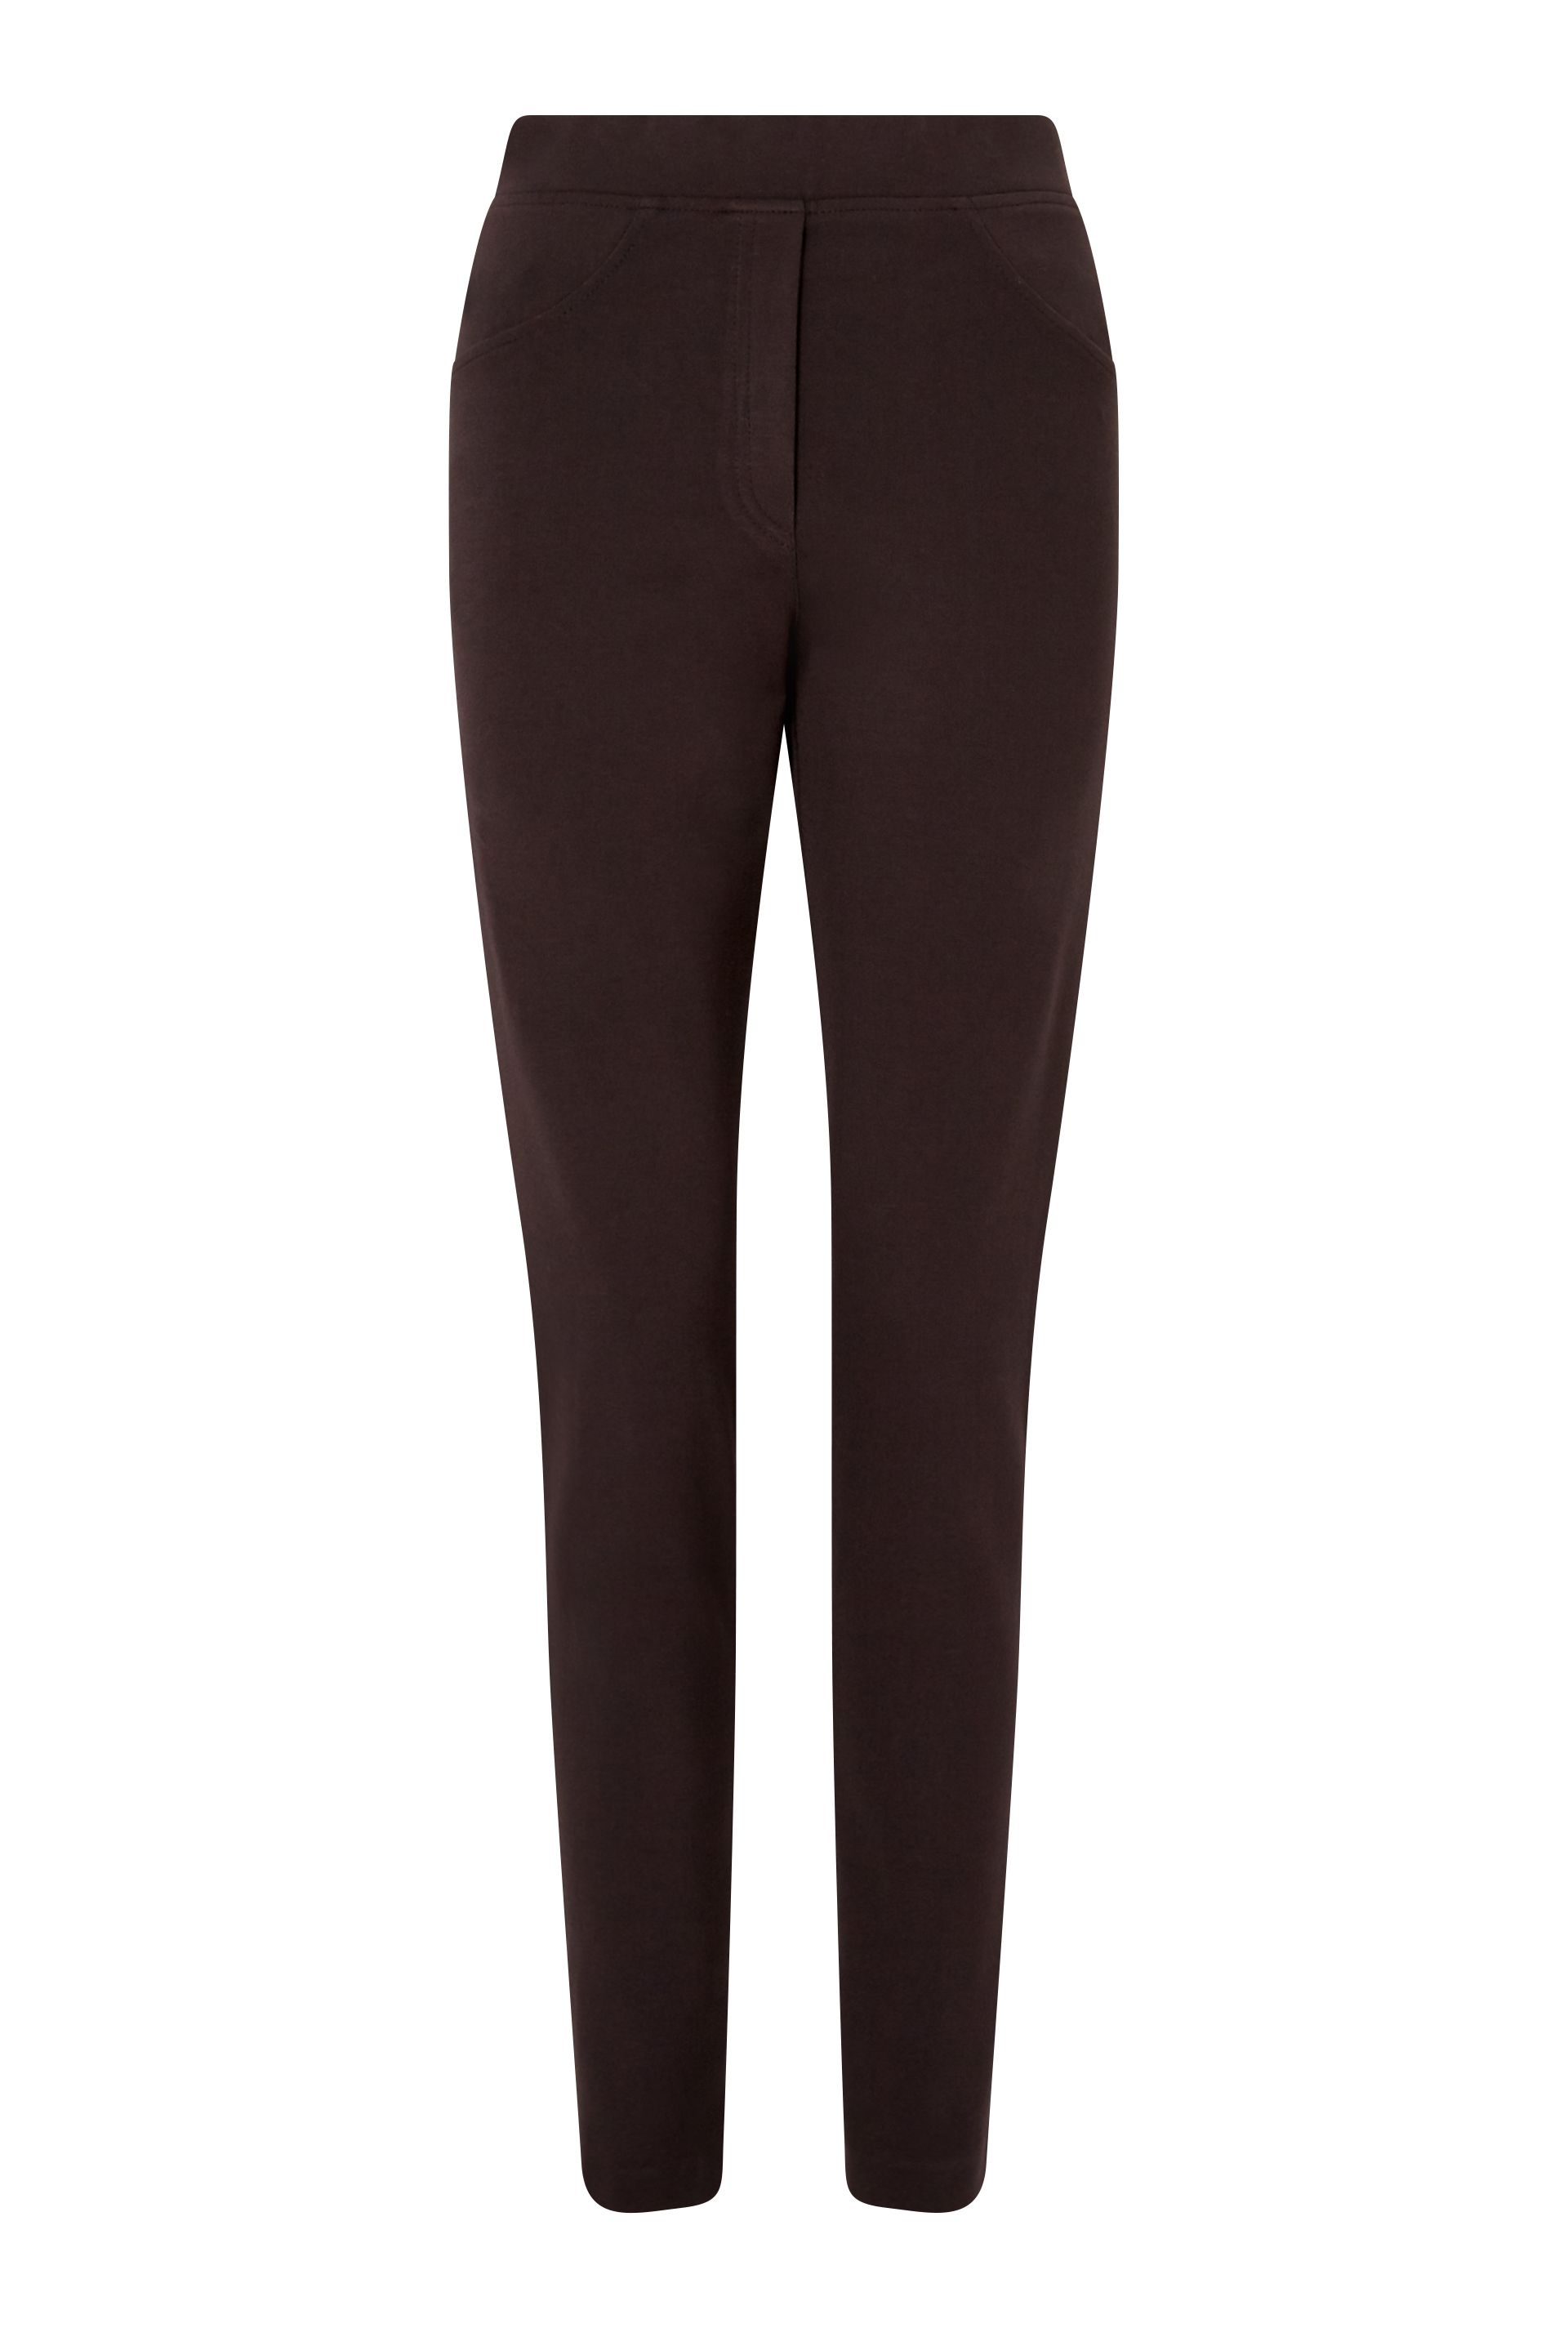 James Lakeland Slim Leg Pull On Trouser, Brown